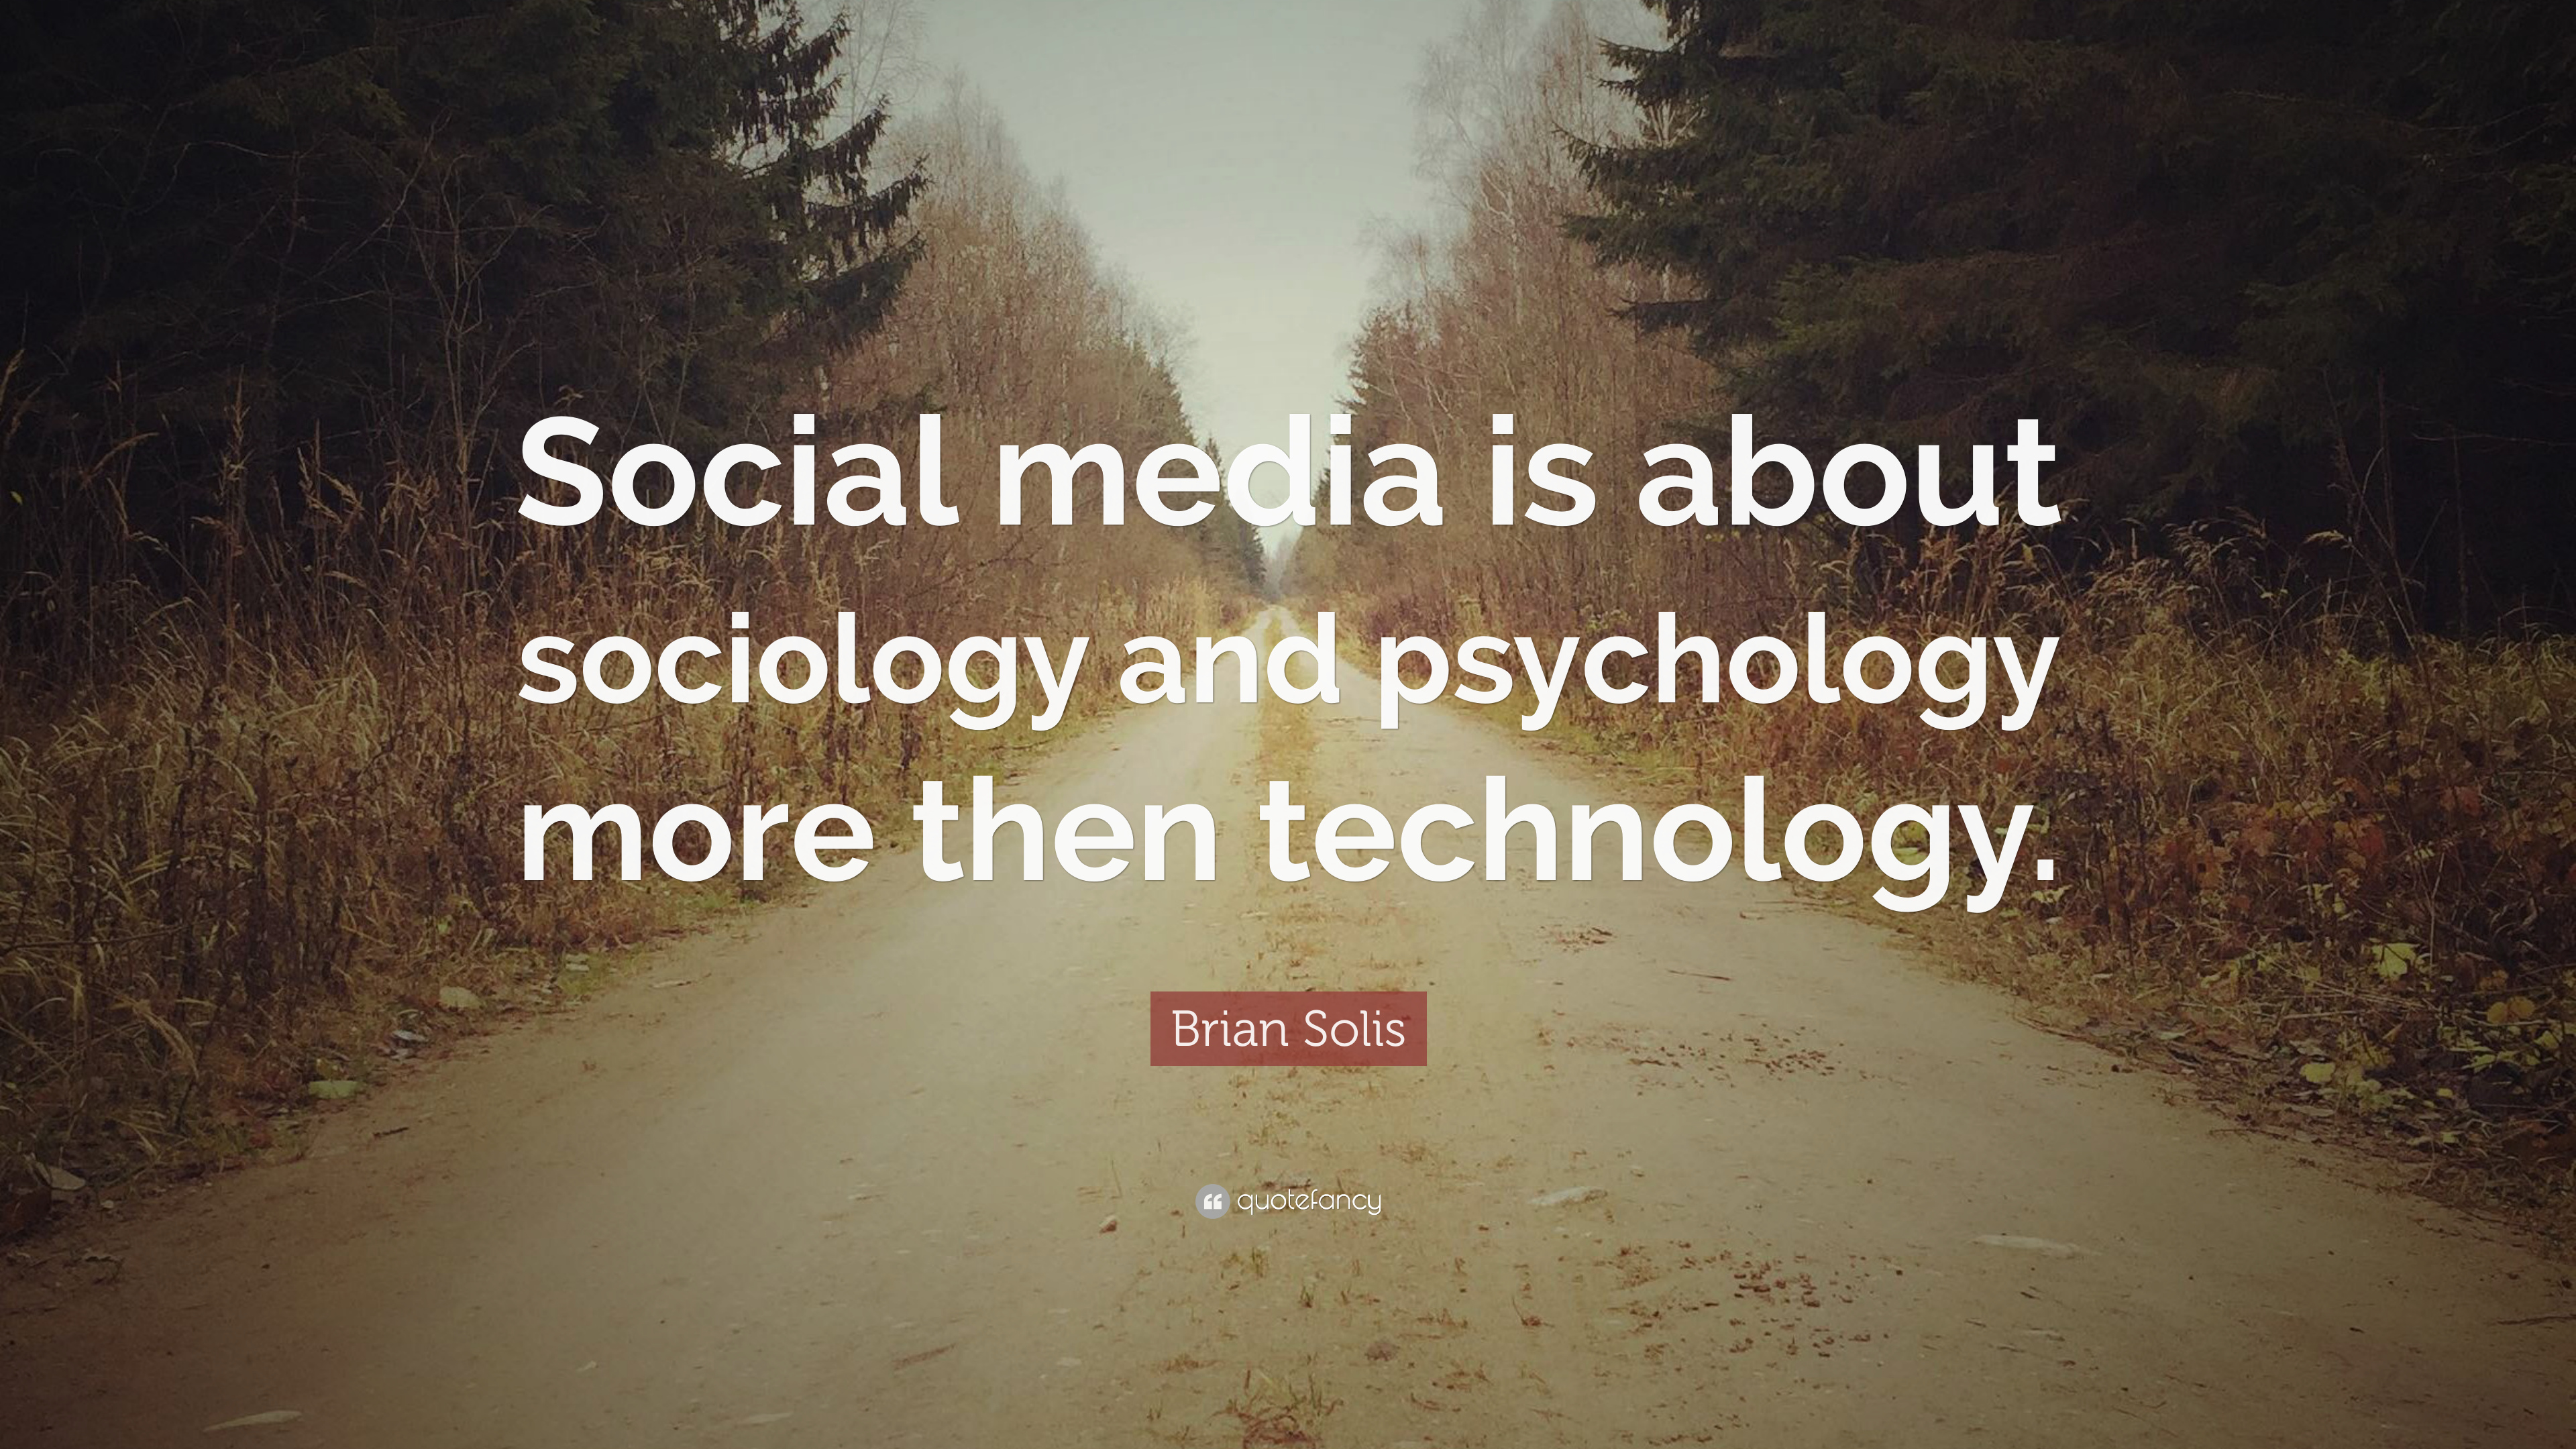 Social media is about social science not technology - Brian Solis